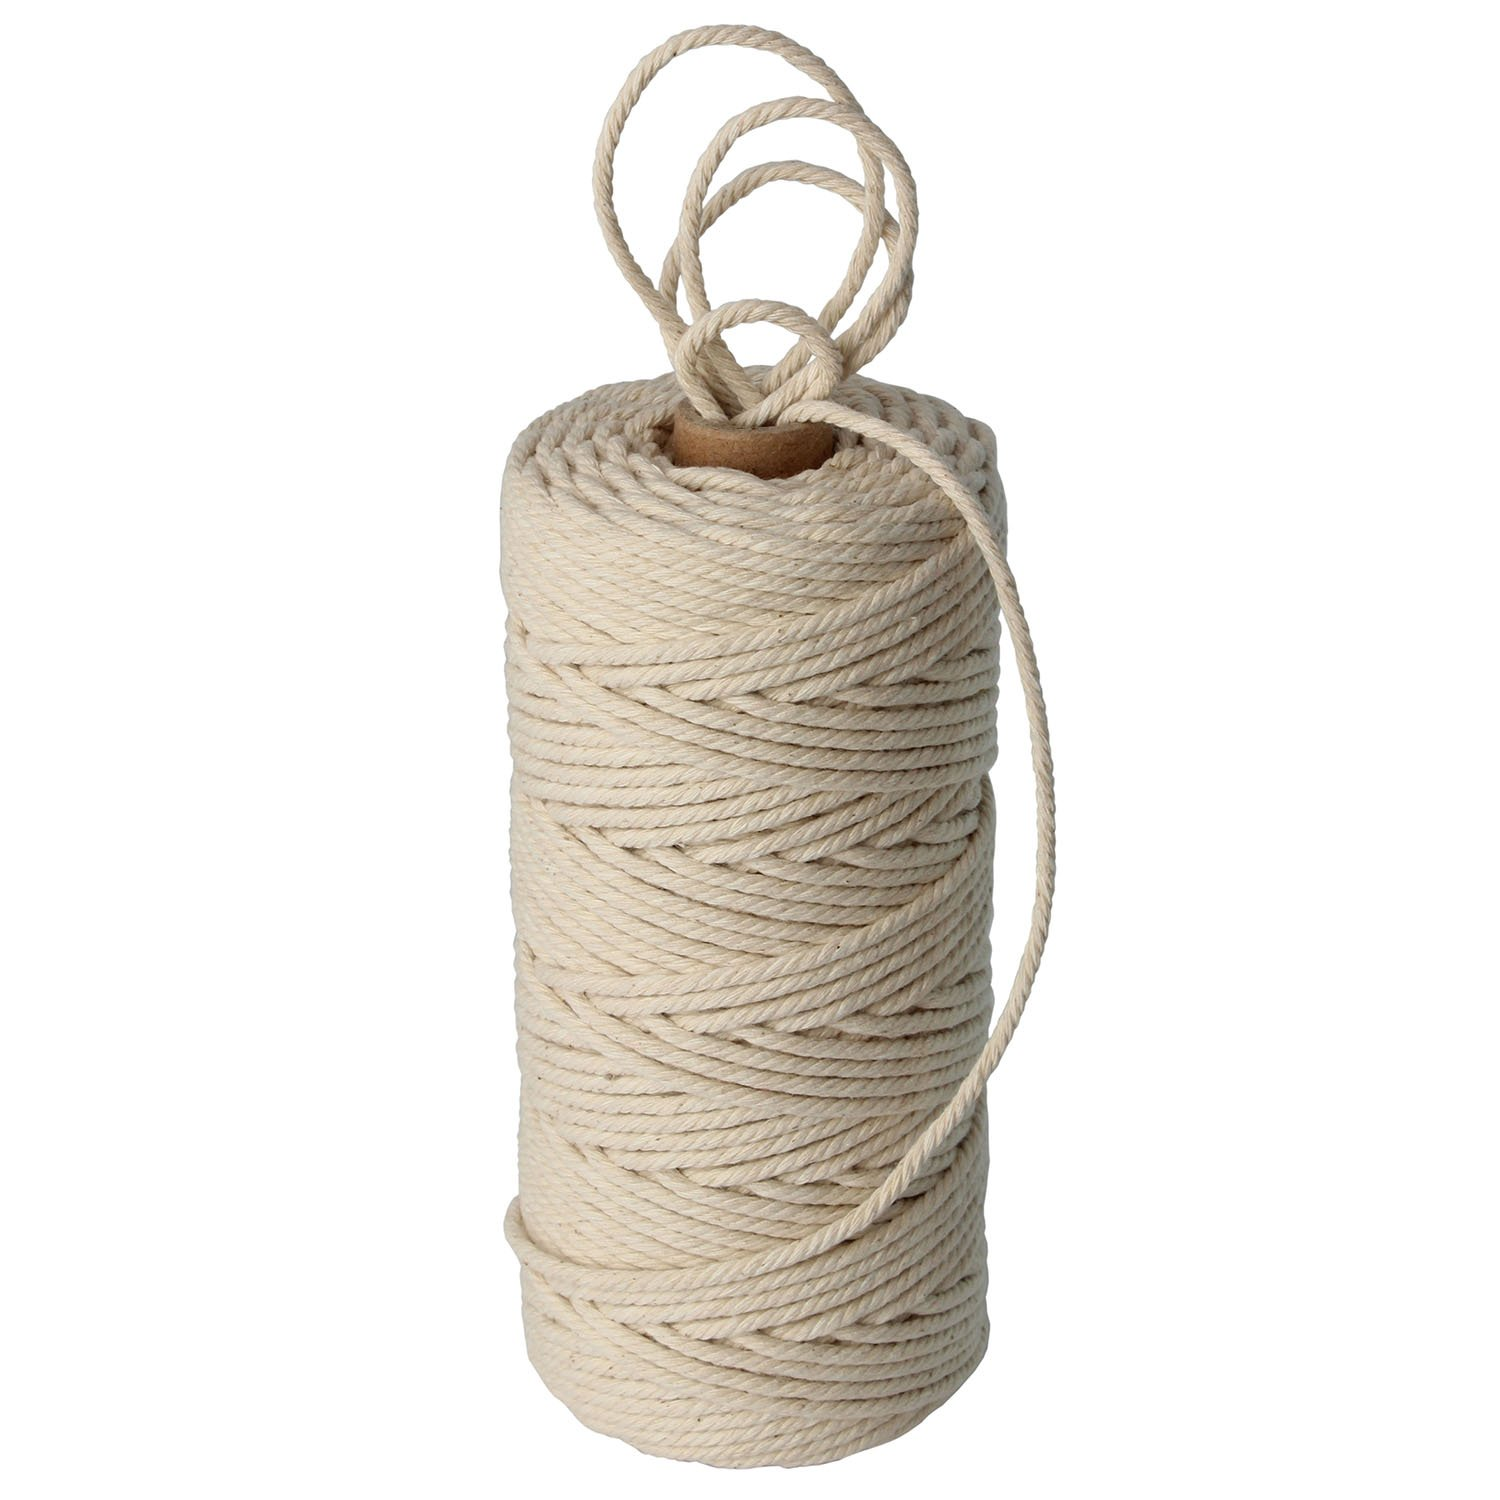 328 feet 3mm Cotton Cord - Best for Plant Hanger Wall Hanging Craft Making - 3mm Twine String for Crafts by Stillness Crafts by XiangGuanQianYing